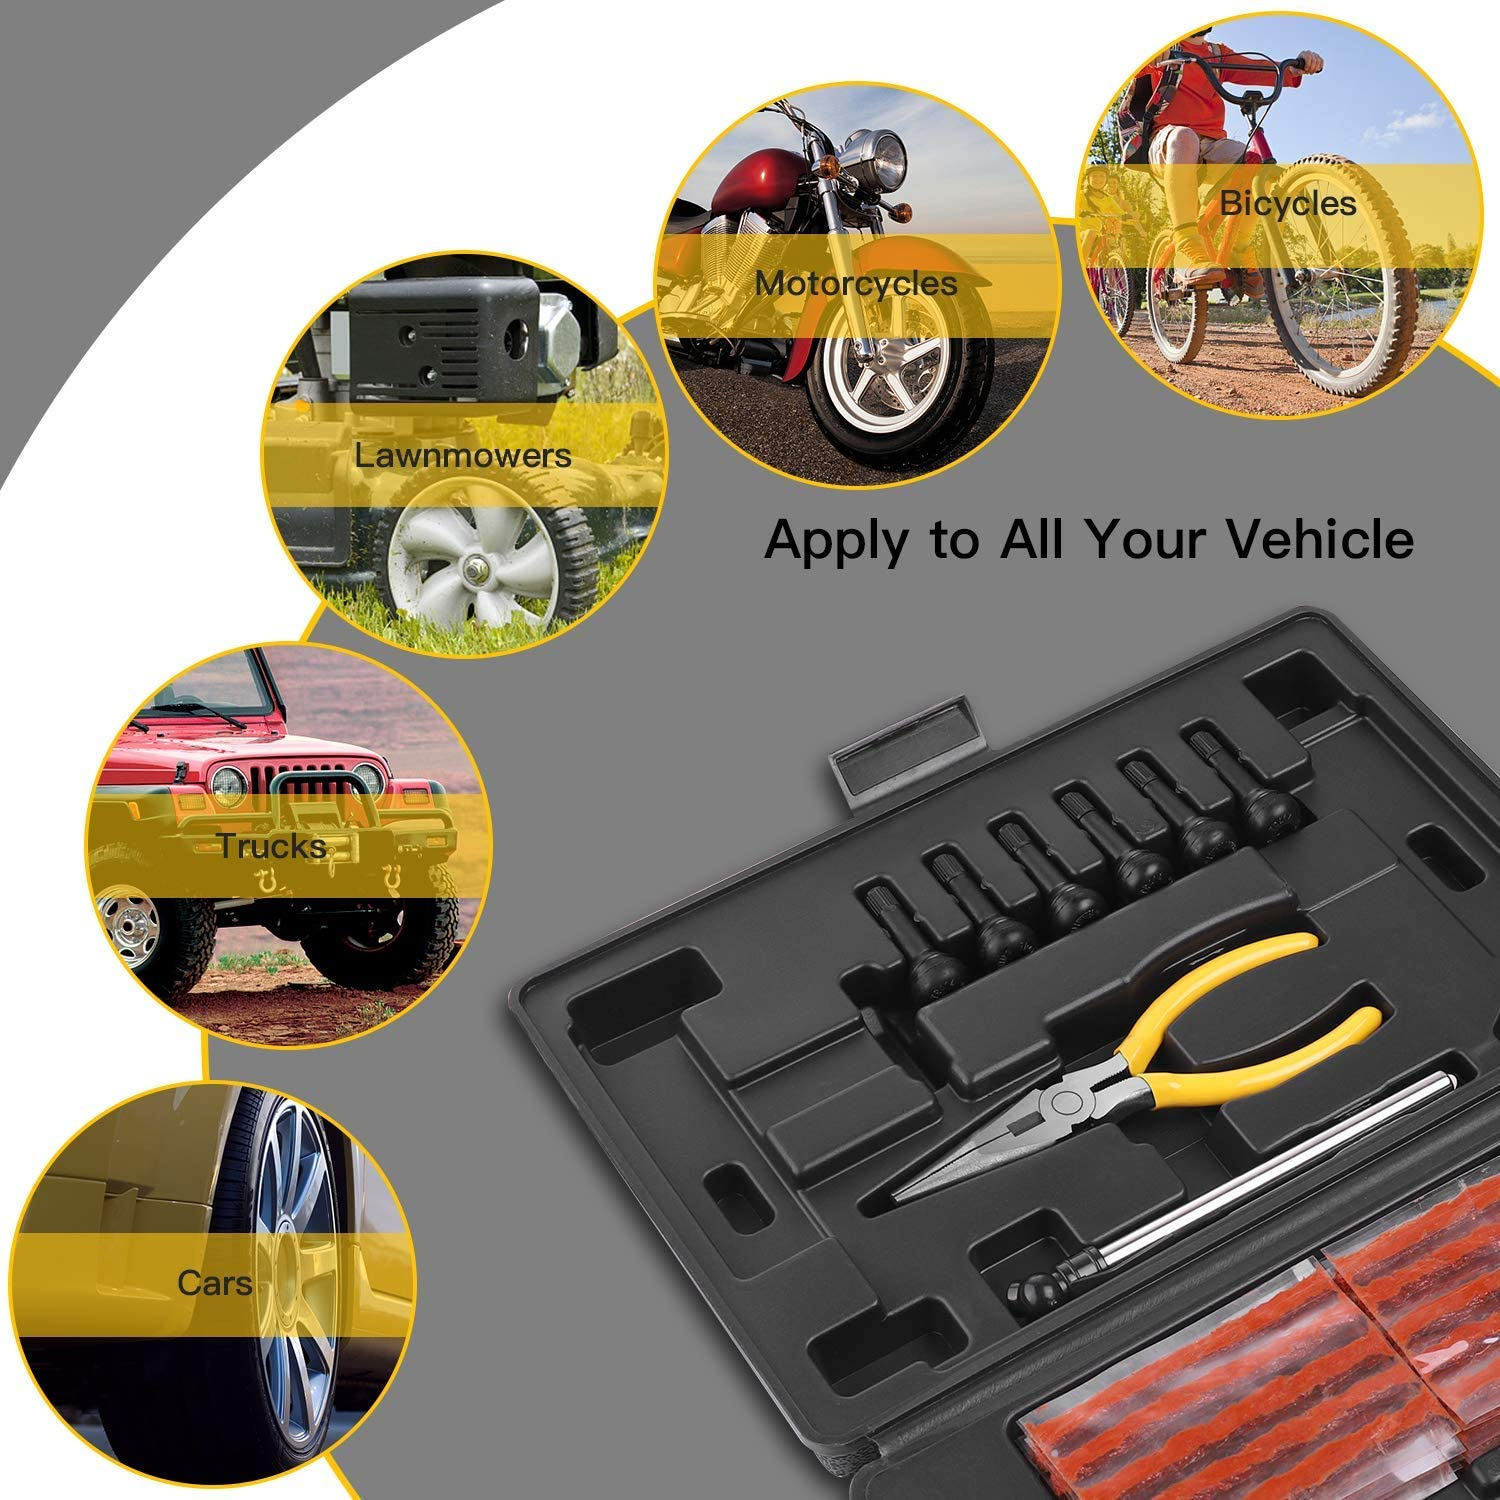 Trailer Motorcycle-Universal Tire Repair Tools to Fix Punctures and Plug Flats -100/% Quality Promise 94Pcs Heavy Duty Tire Plug Kit for Car Tractor Truck ATV Jeep TECCPO Tire Repair Kit RV